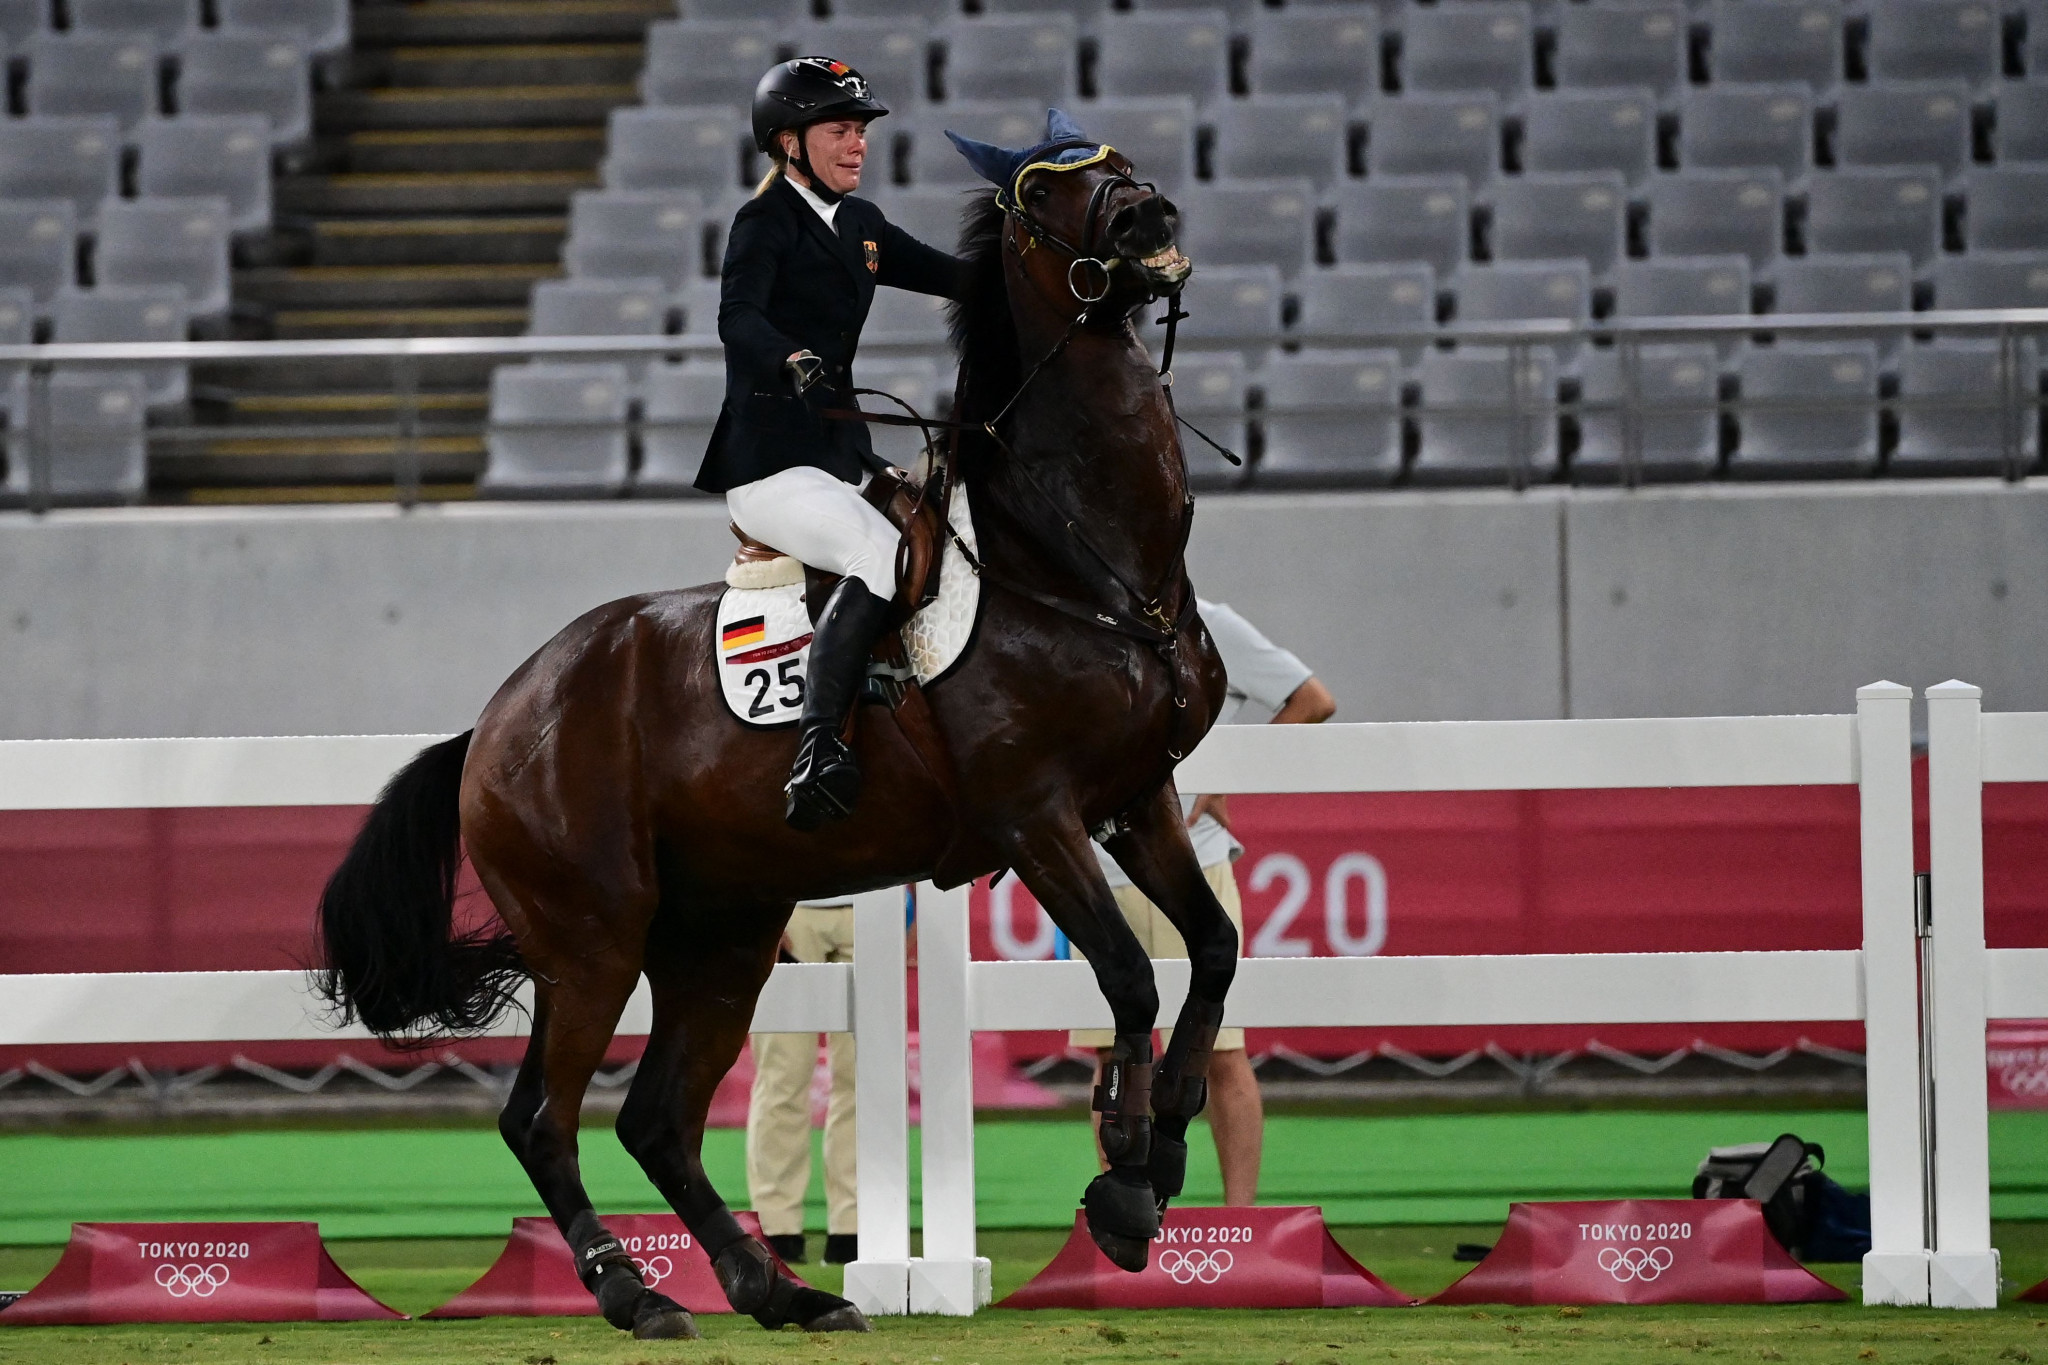 UIPM says riding will be urgently discussed at 2021 Congress after Saint Boy controversy in Tokyo